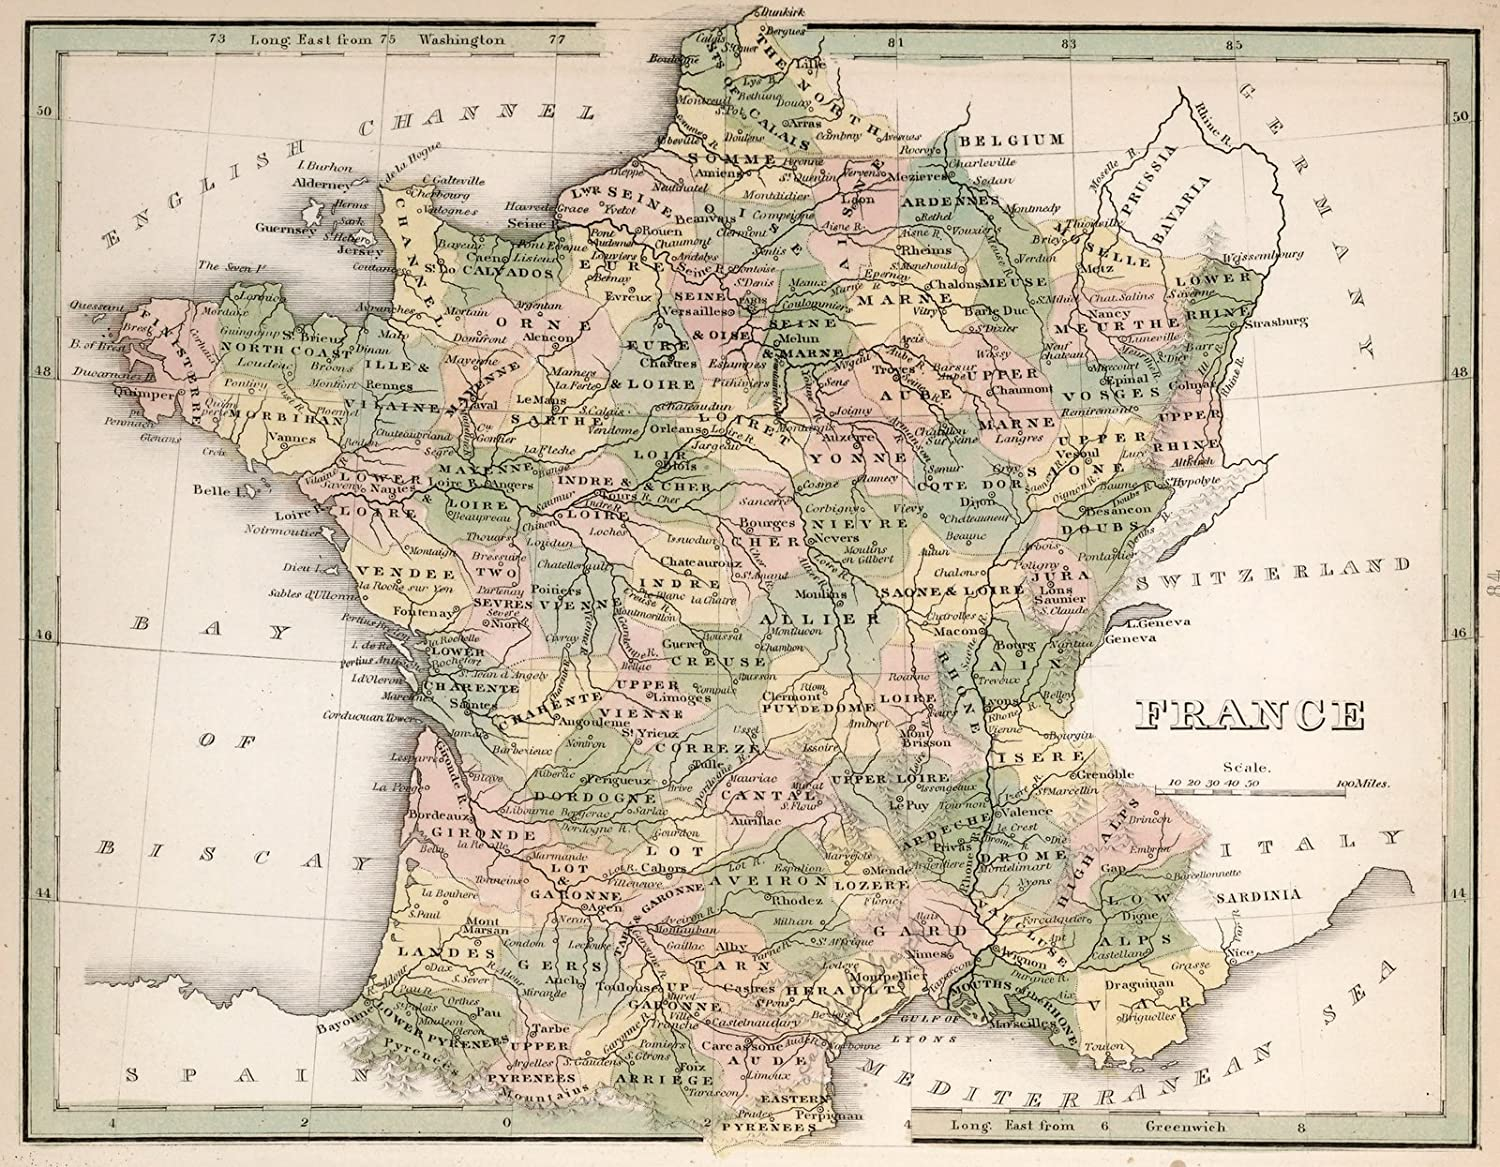 Amazon.com: 1838 World Atlas | France. A Comprehensive Atlas ... on belgium france map, chateau thierry france map, arras france map, le chambon france map, savoy france map, tours france map, london france map, dordogne region france map, barcelonnette france map, belleau wood france map, normandy france map, nice france map, high speed rail france map, france 1940 map, carriveau france map, battle of france map, milan france map, verdun france map, calais france map, meuse france map,